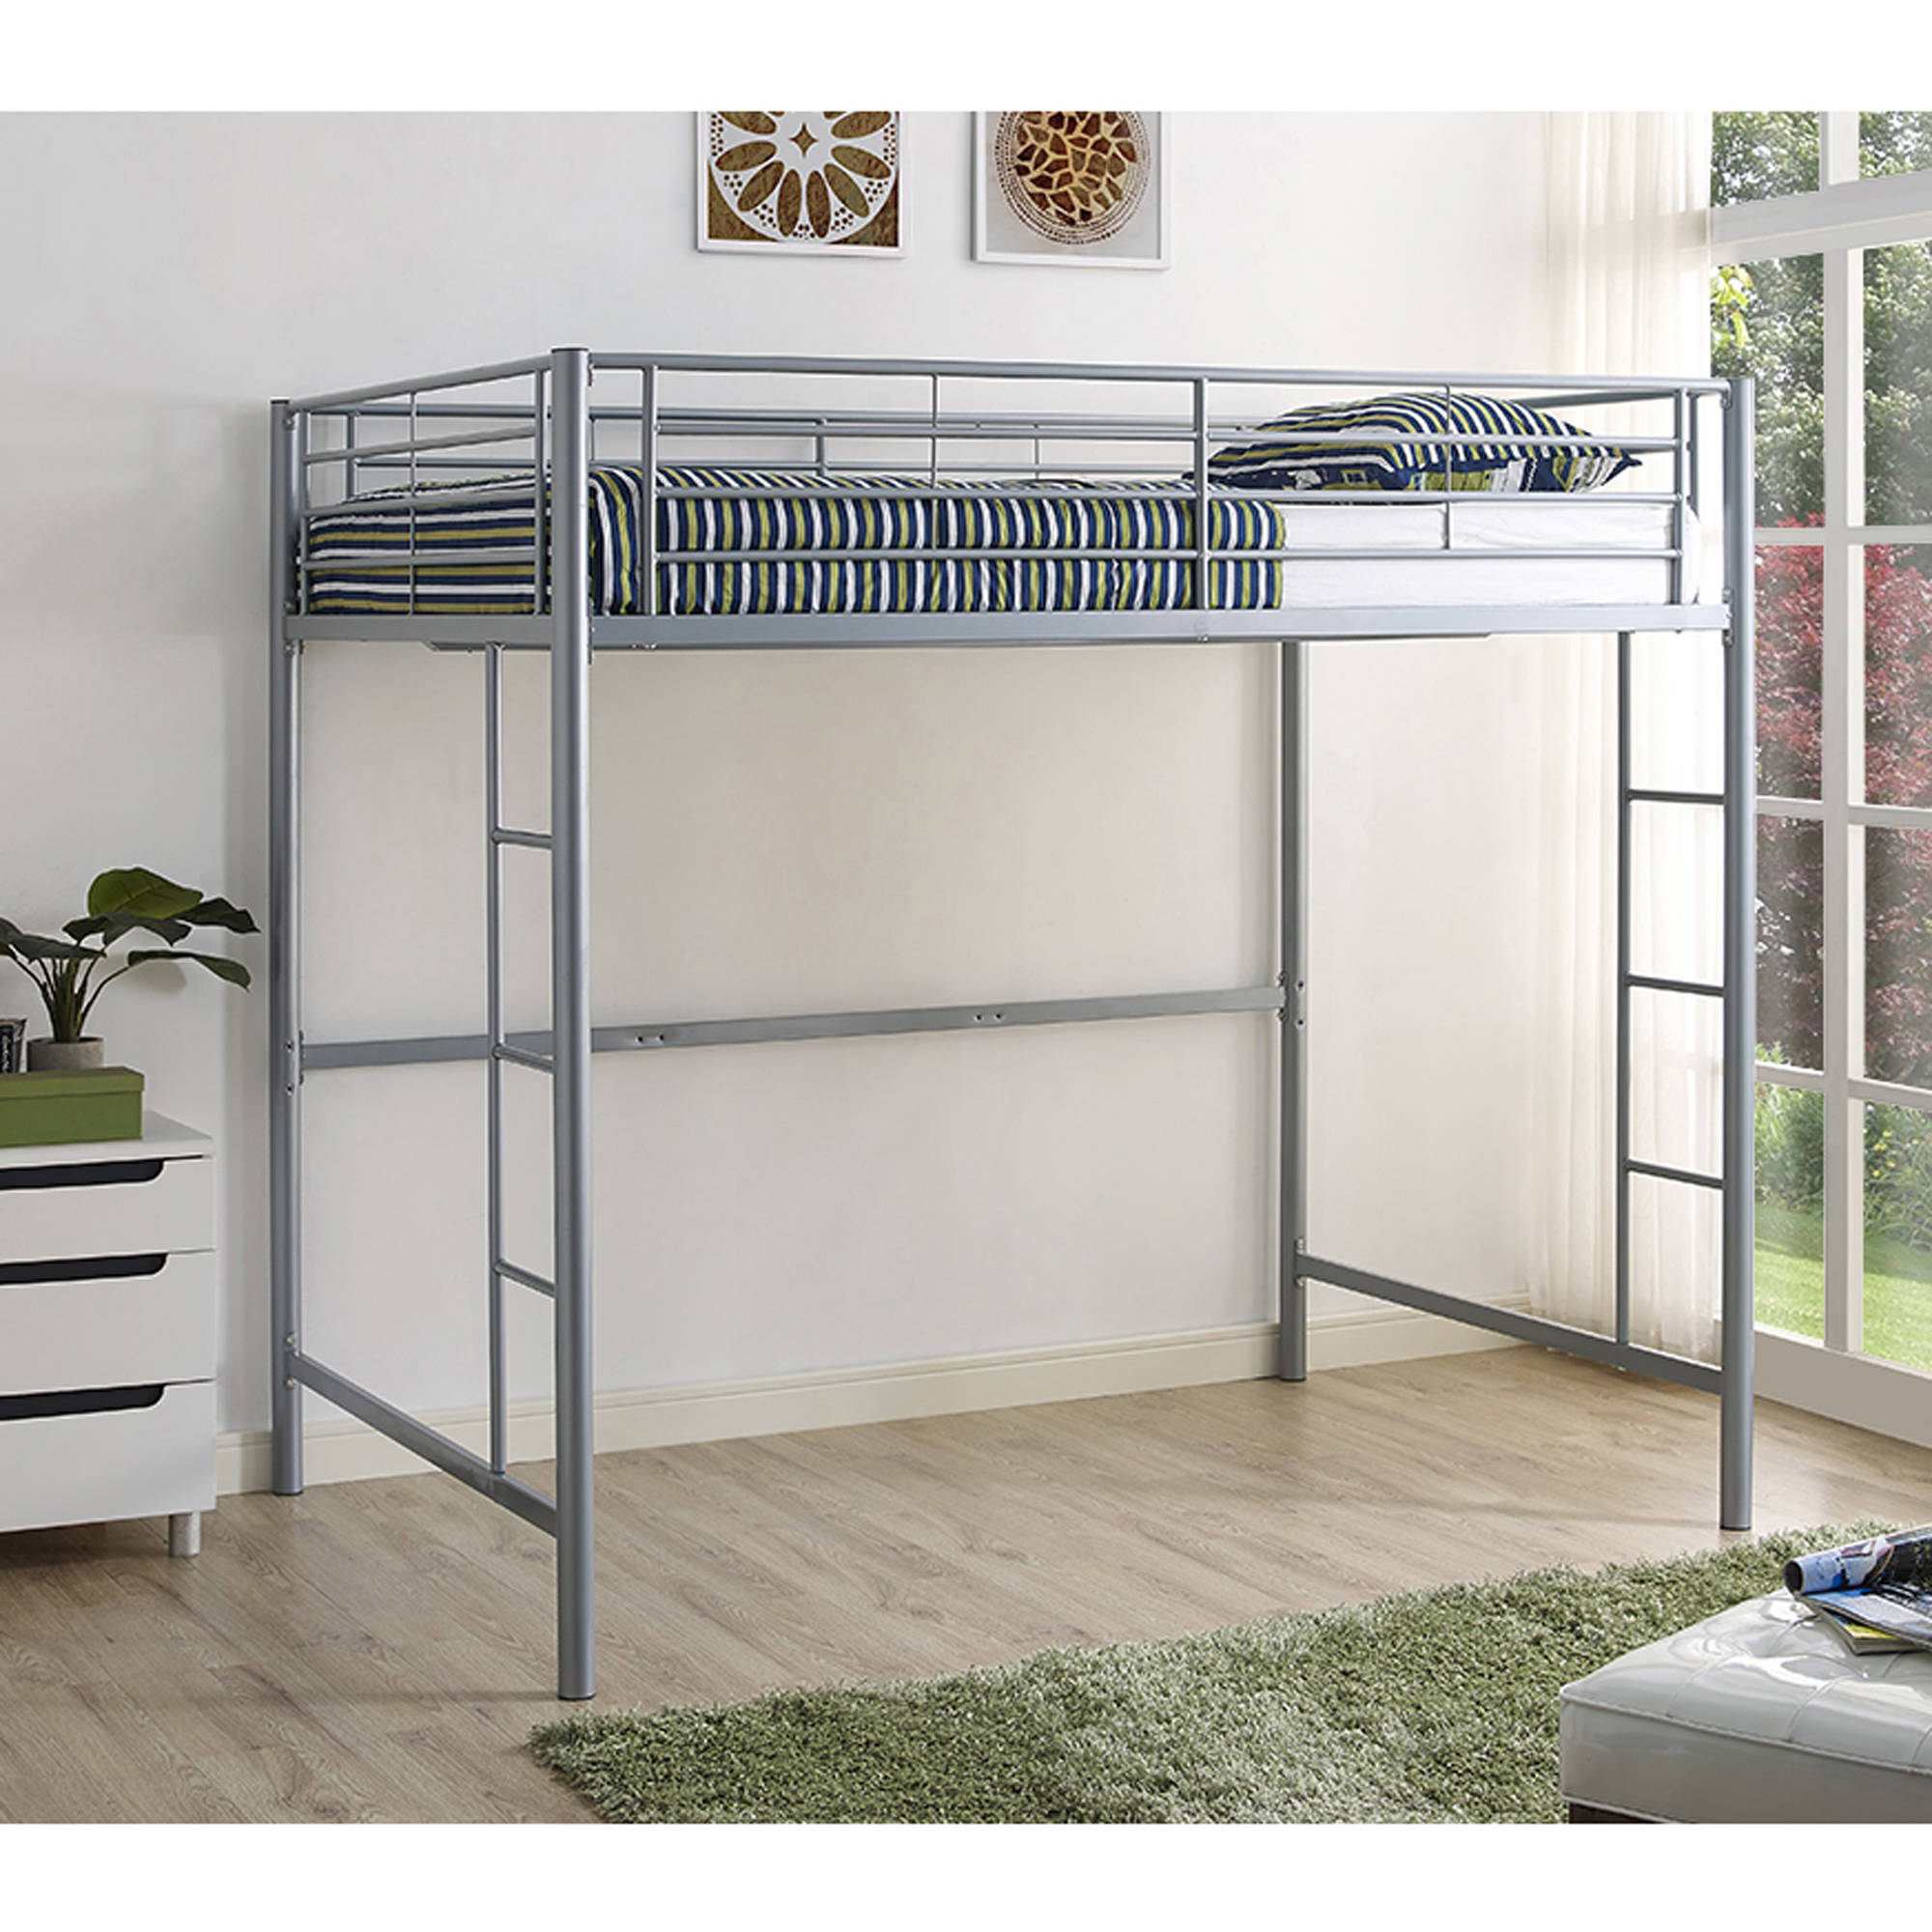 Walker Edison Full Size Metal Loft Bed - Silver